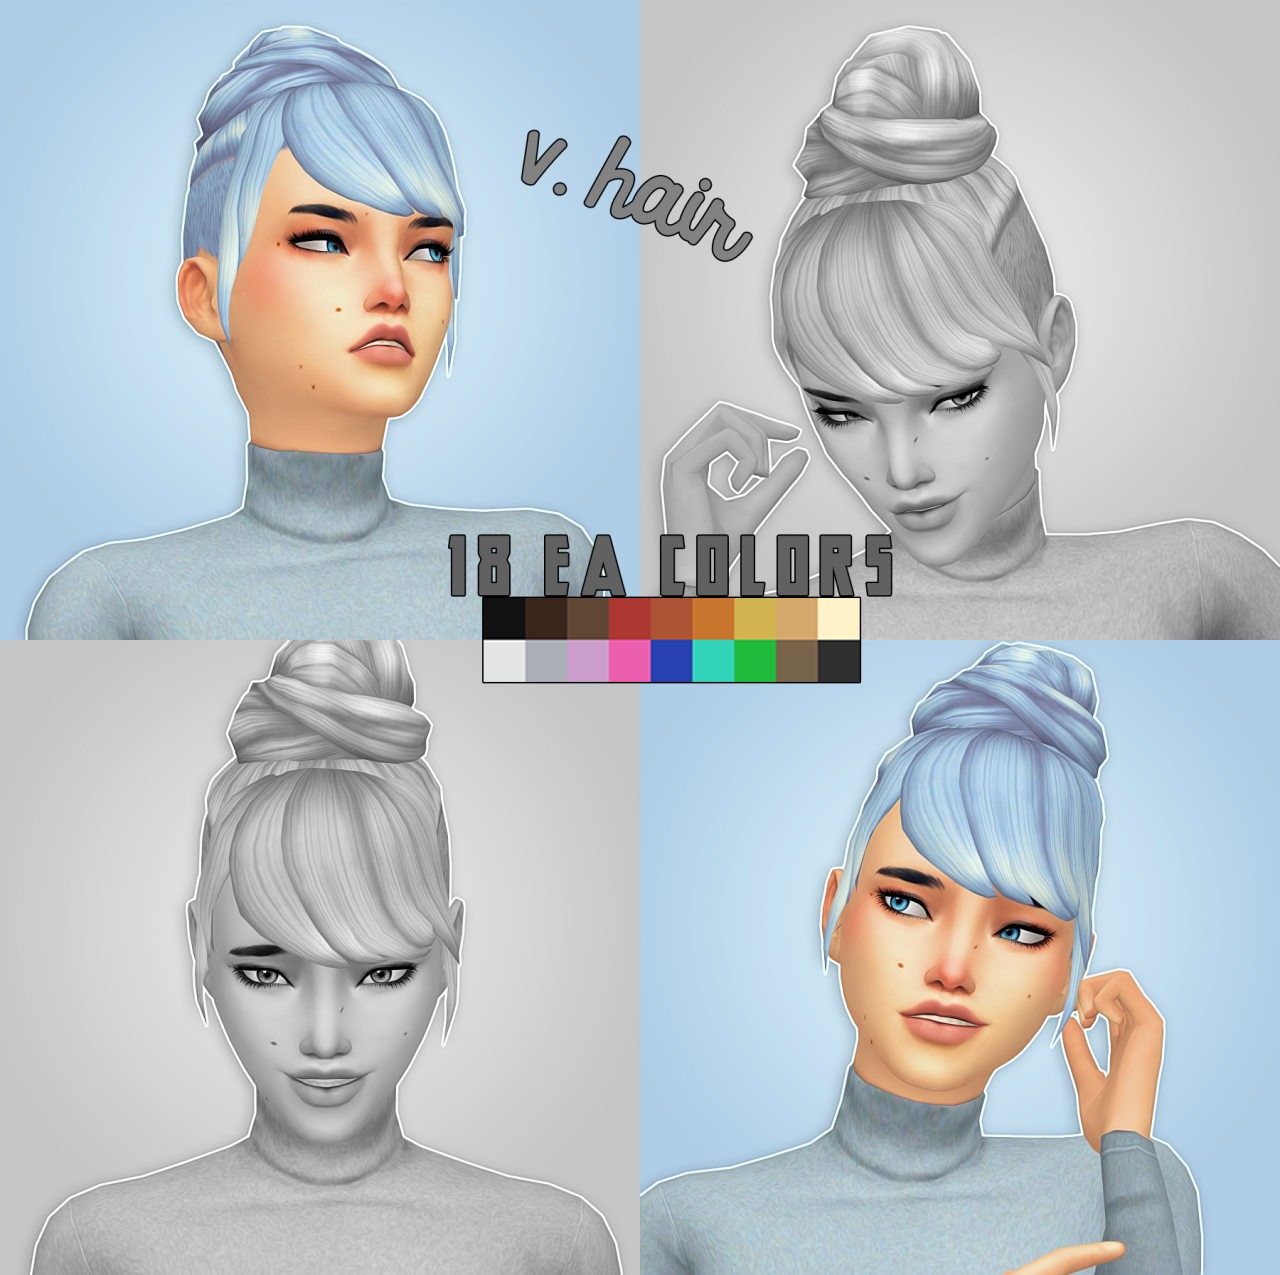 V Hair_18 EA colors by CrazyCupcakefr